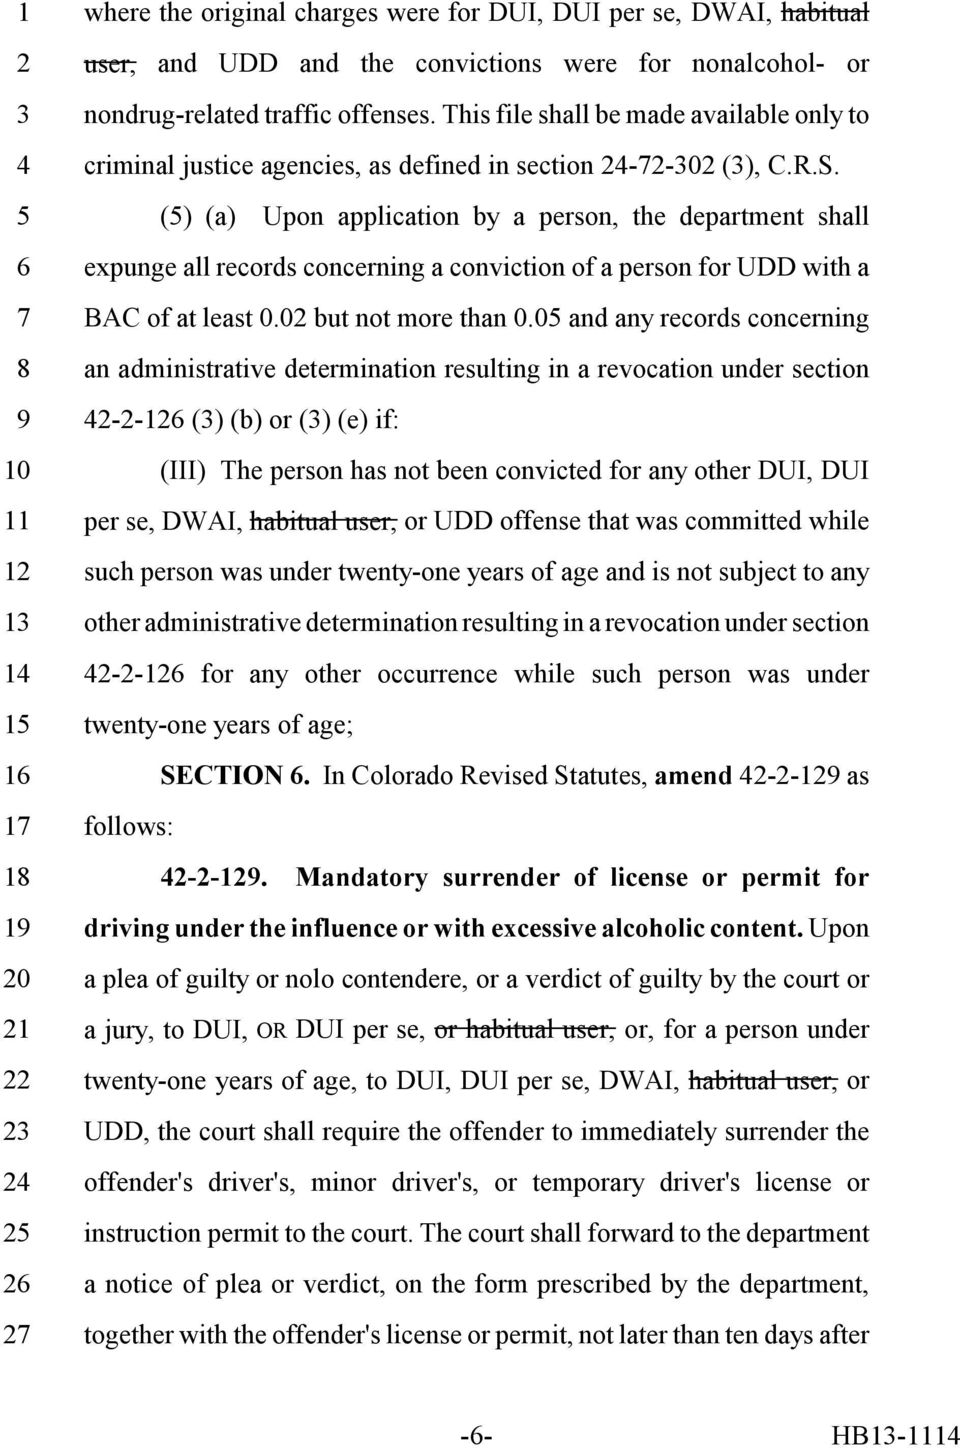 () (a) Upon application by a person, the department shall expunge all records concerning a conviction of a person for UDD with a BAC of at least 0.0 but not more than 0.